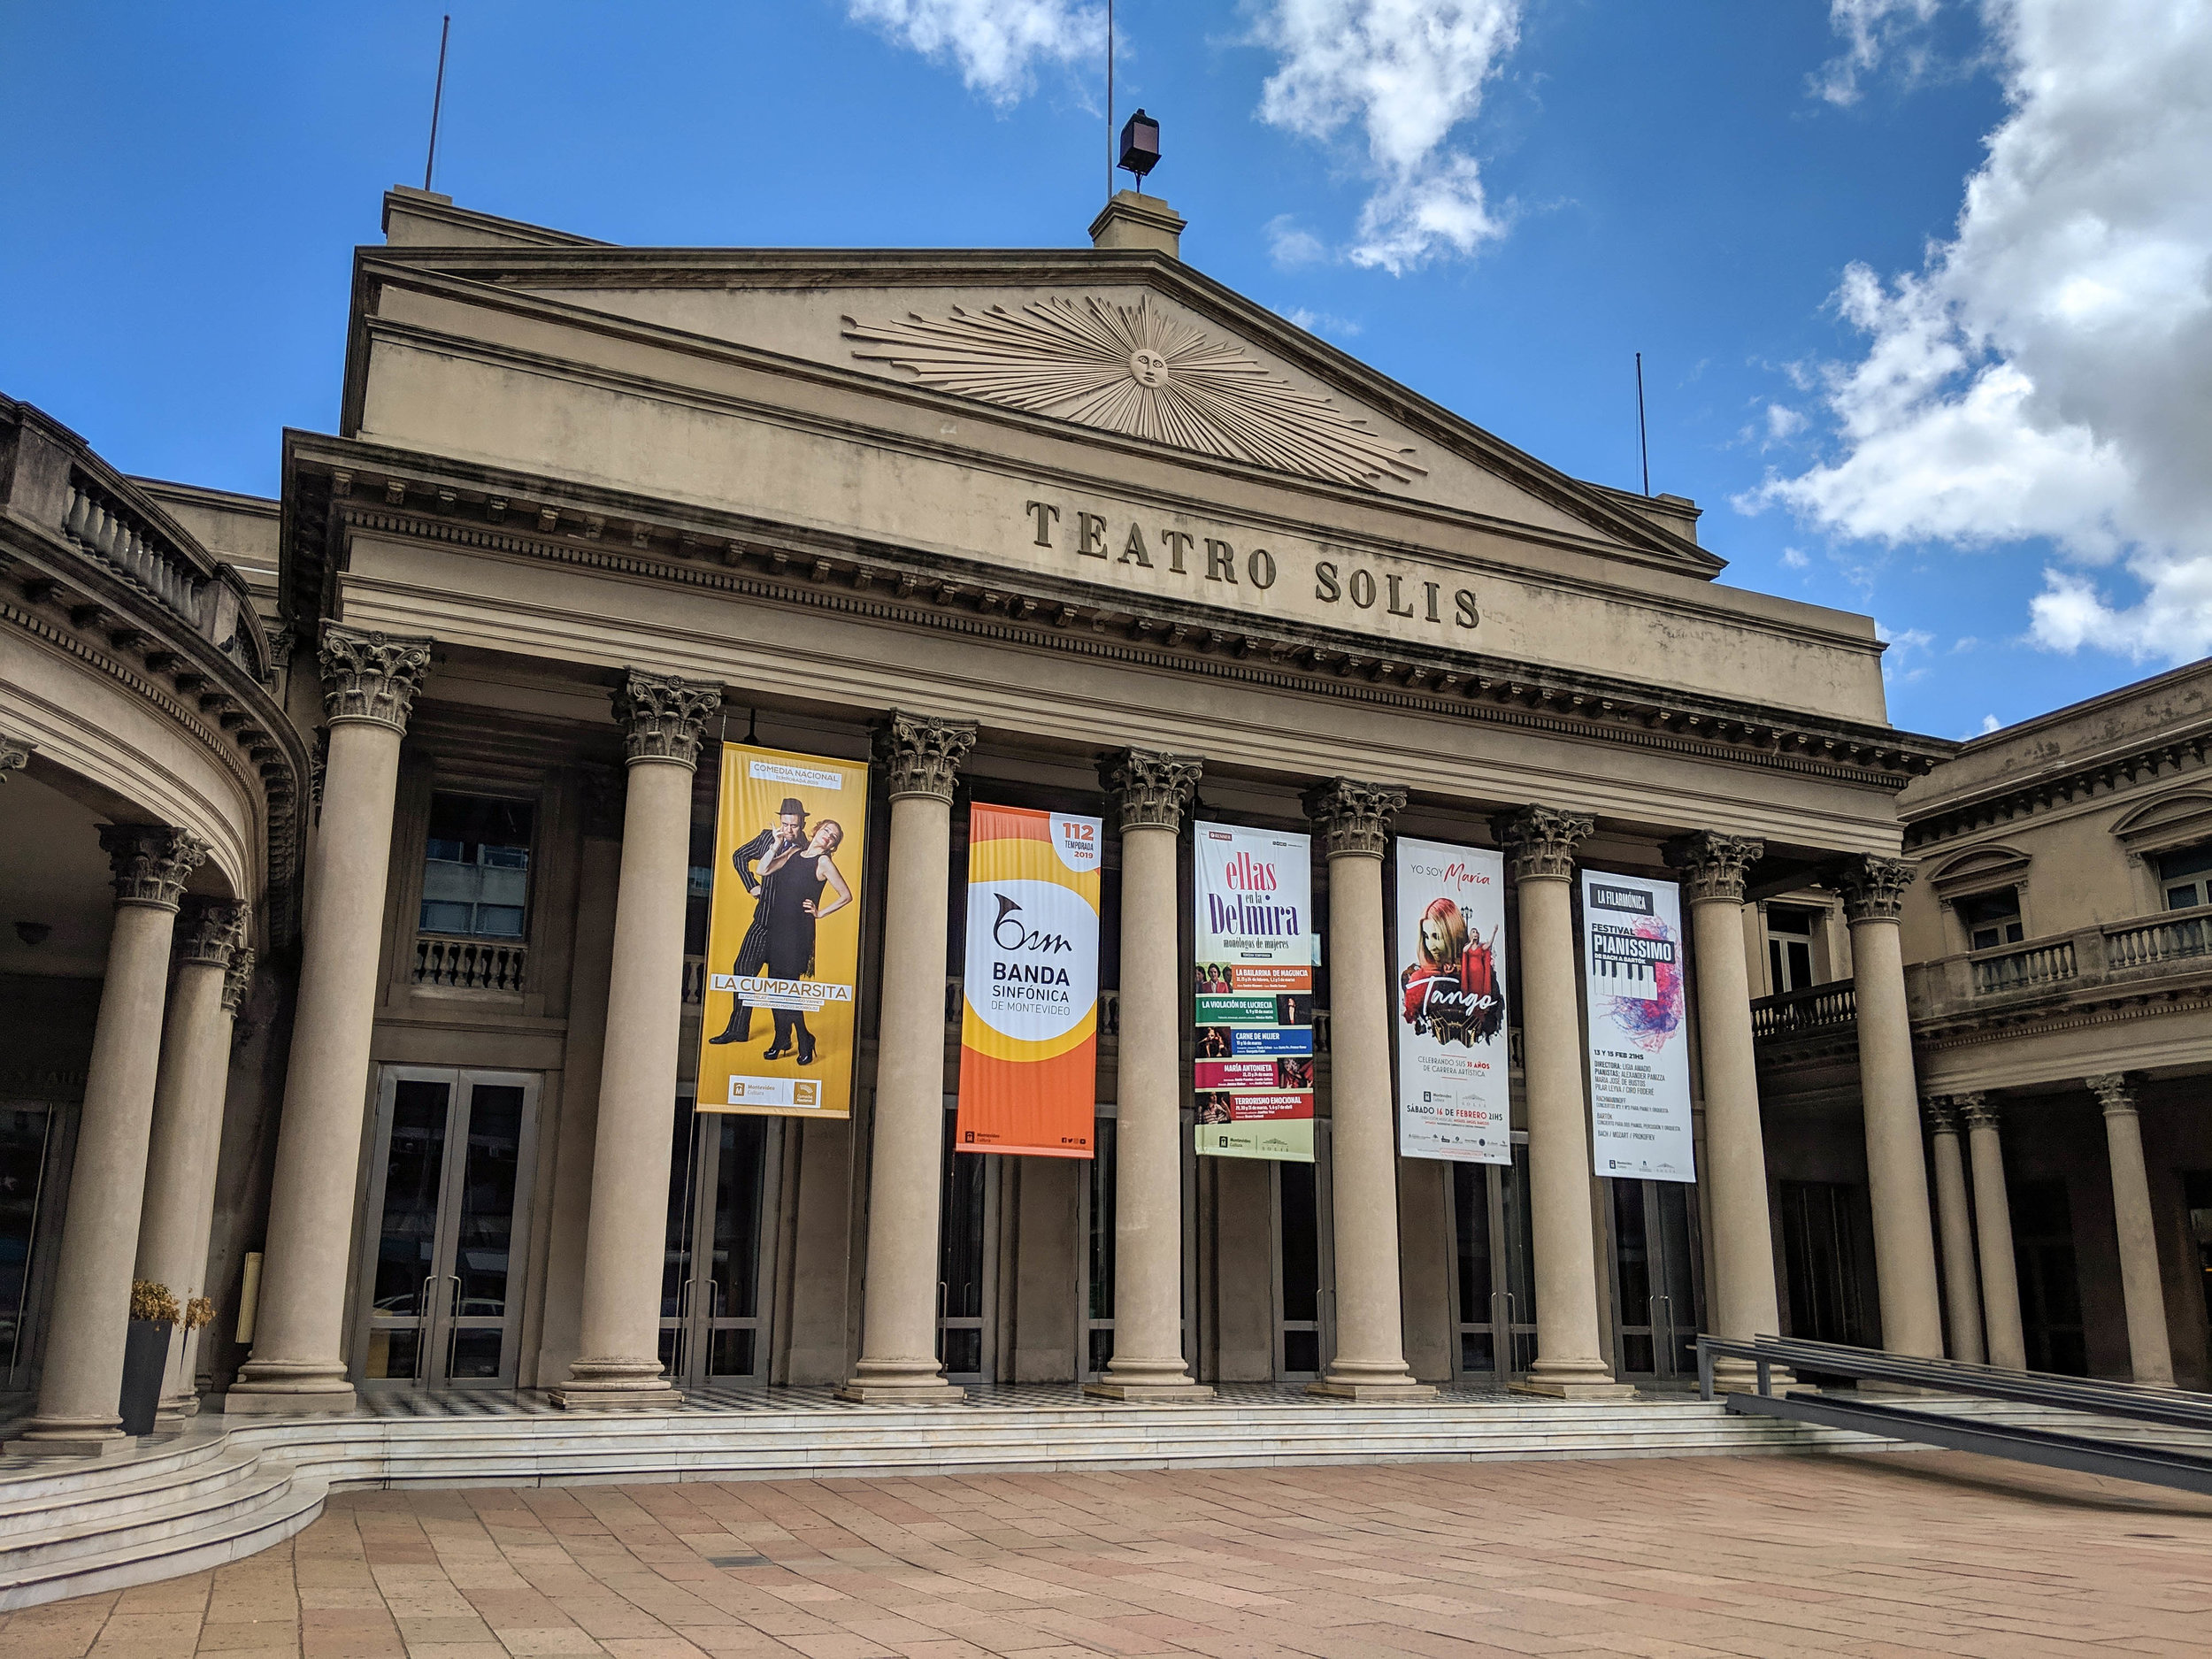 Teatro Solis, things to do in Montevideo